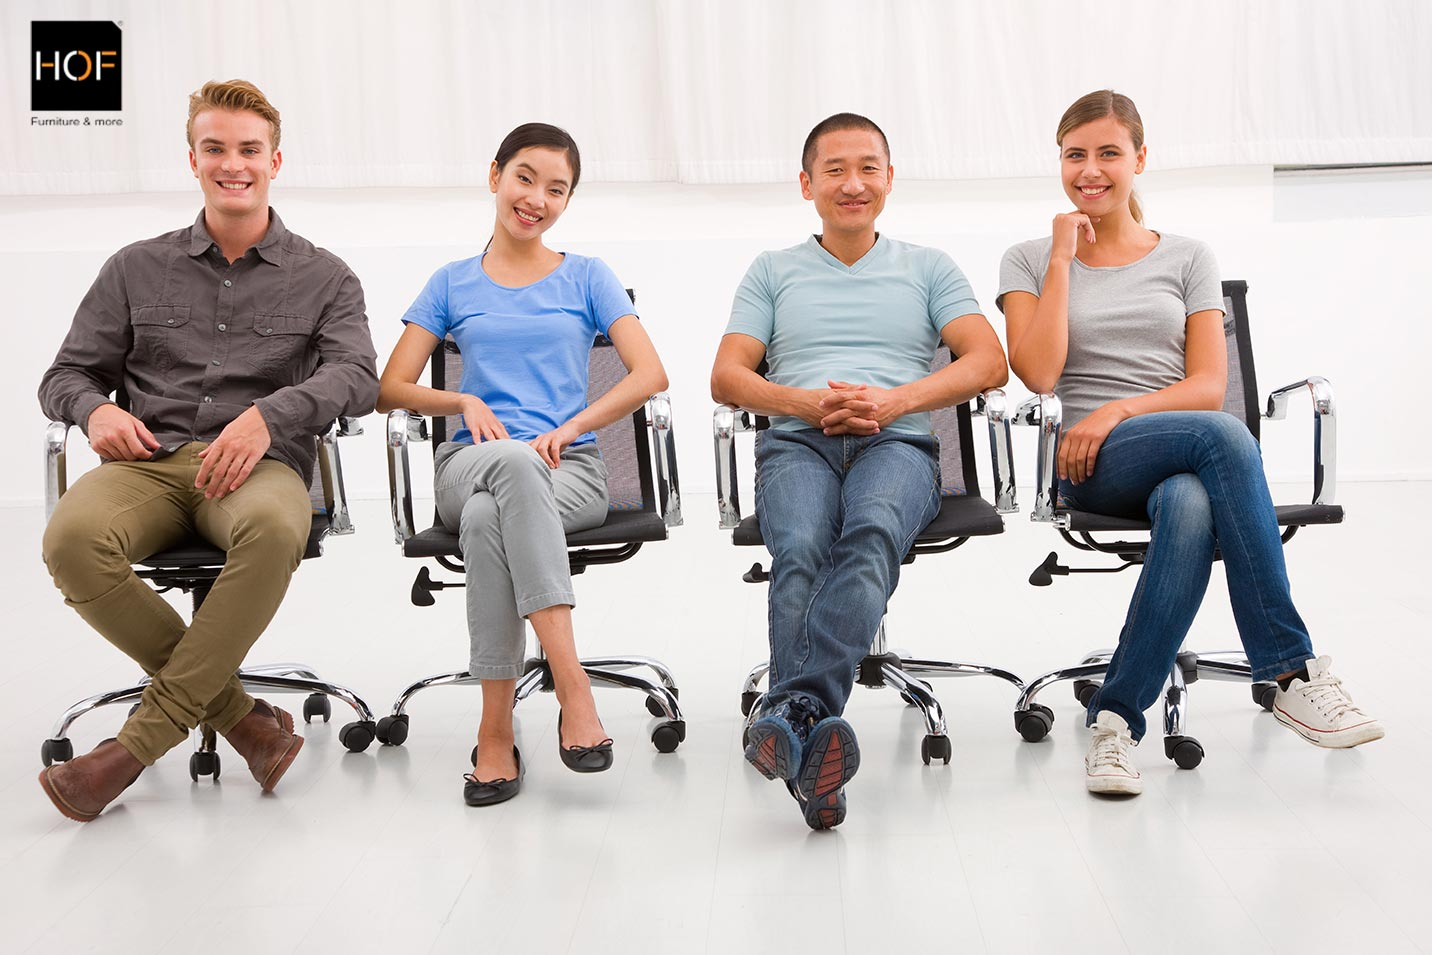 Do You Cross Your Legs While Seated On Office Chairs Hof